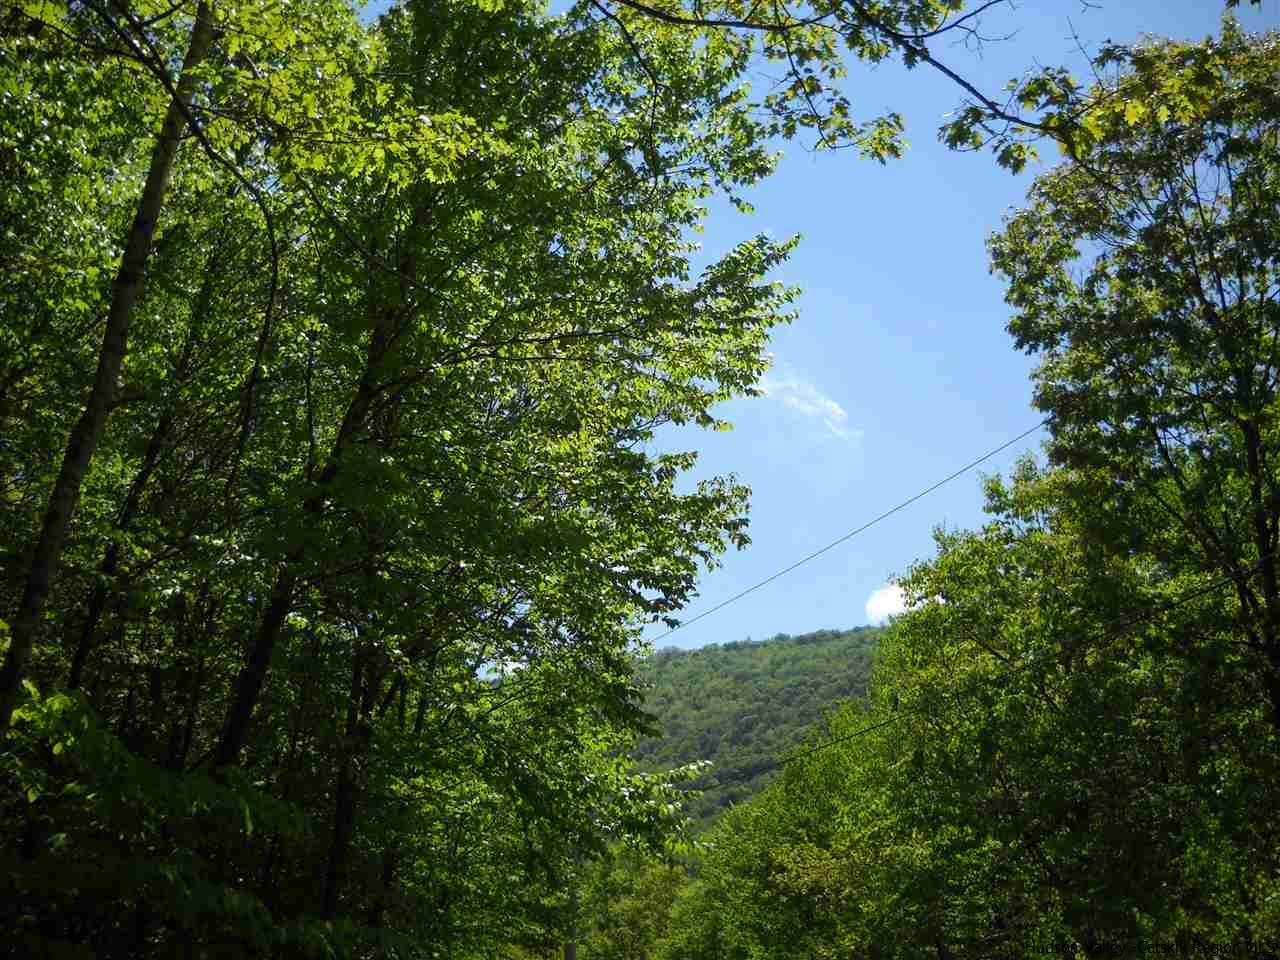 Additional photo for property listing at TBD Route 28 TBD Route 28 Big Indian, New York 12480 United States